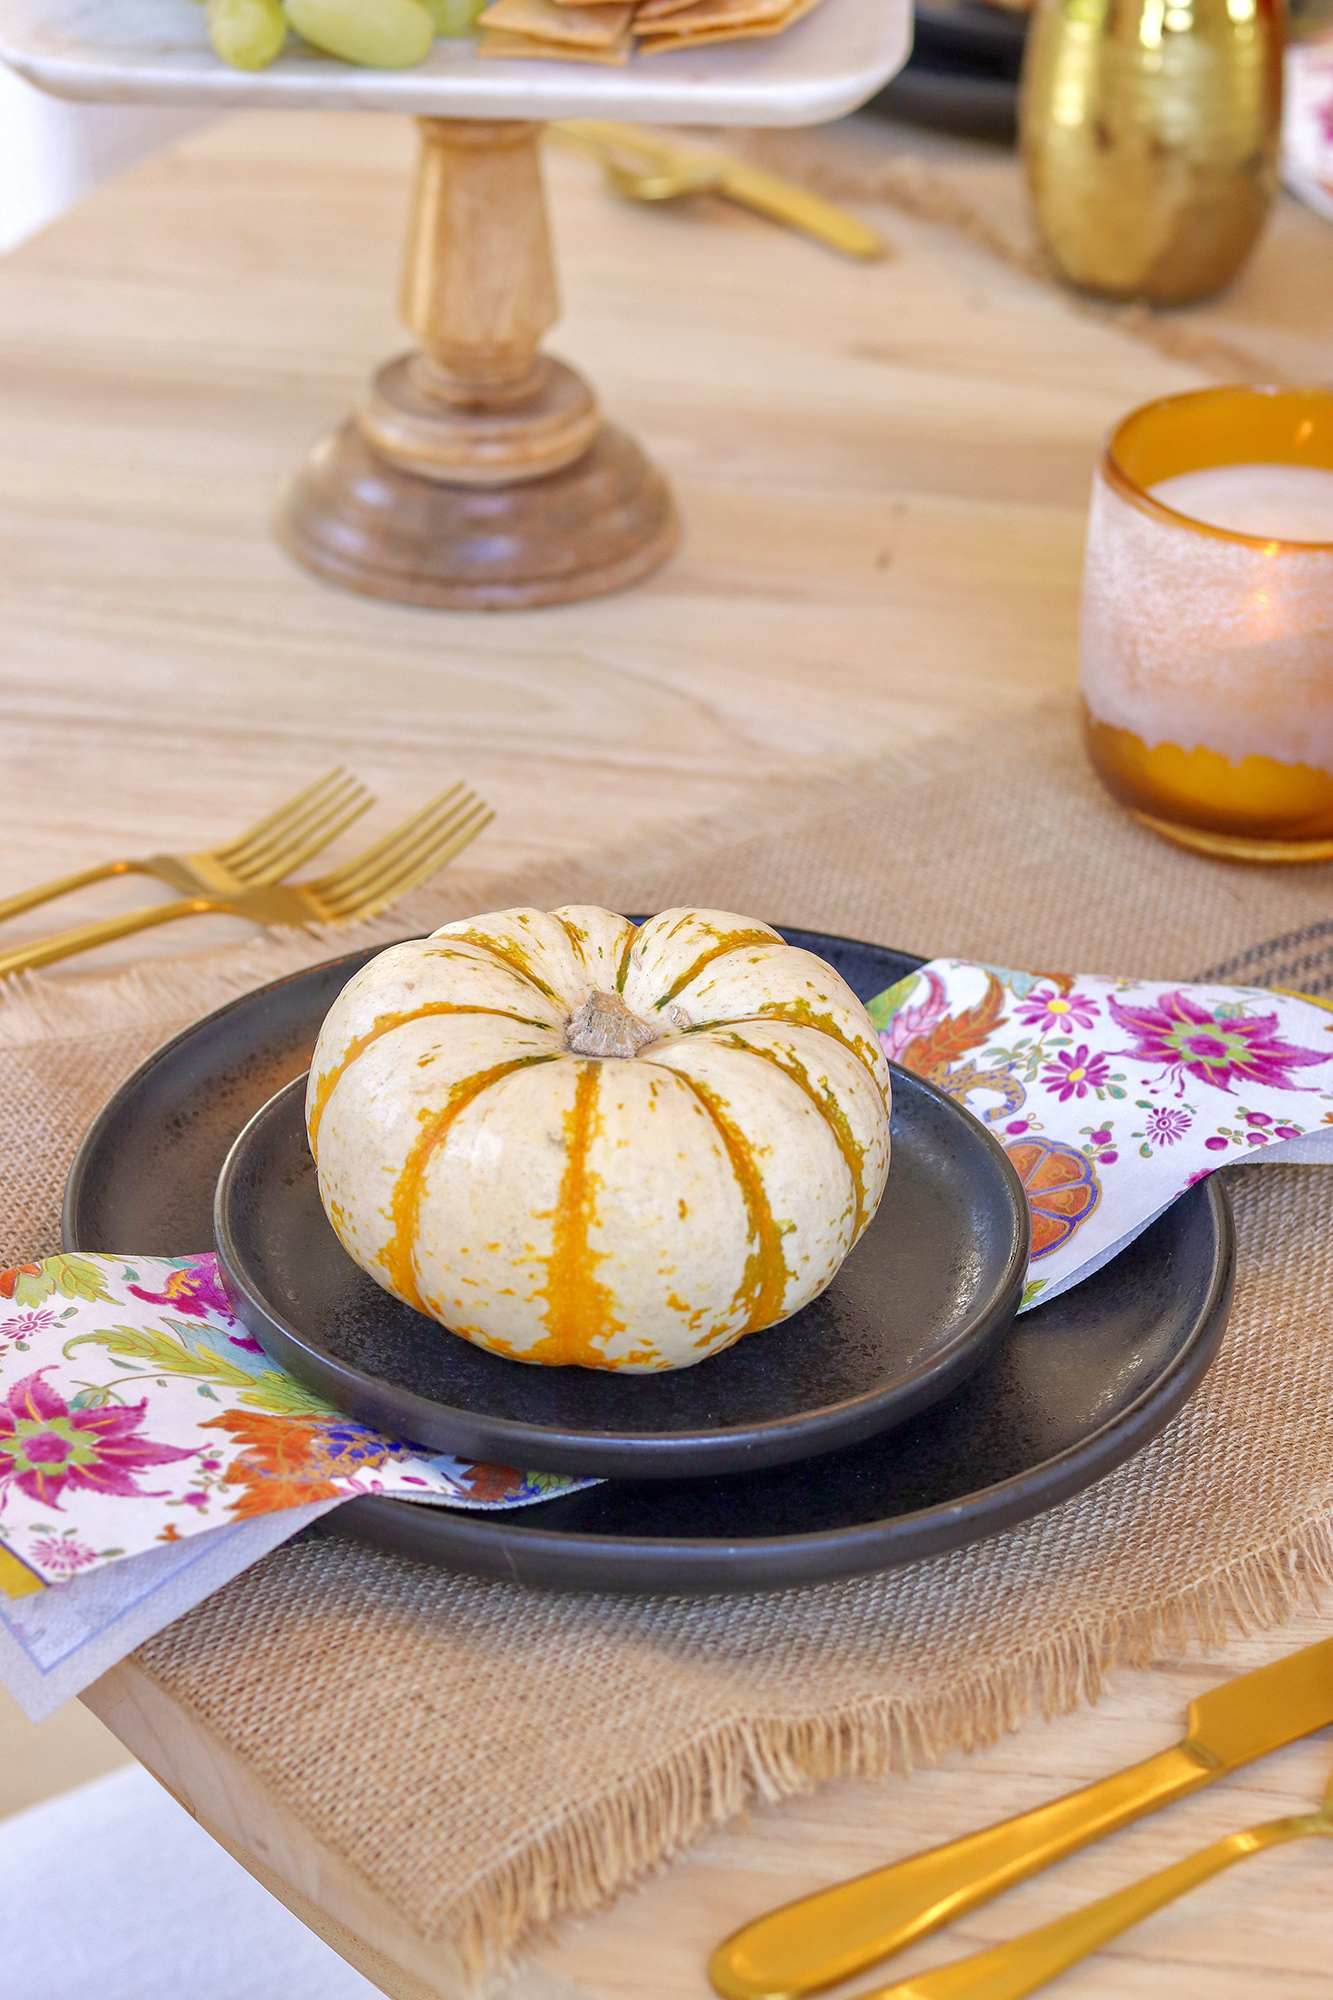 Fun & Elegant Halloween Tablescape and Decor - Everything you need to throw a slightly spooky dinner party without getting kitschy! Very Affordable options.